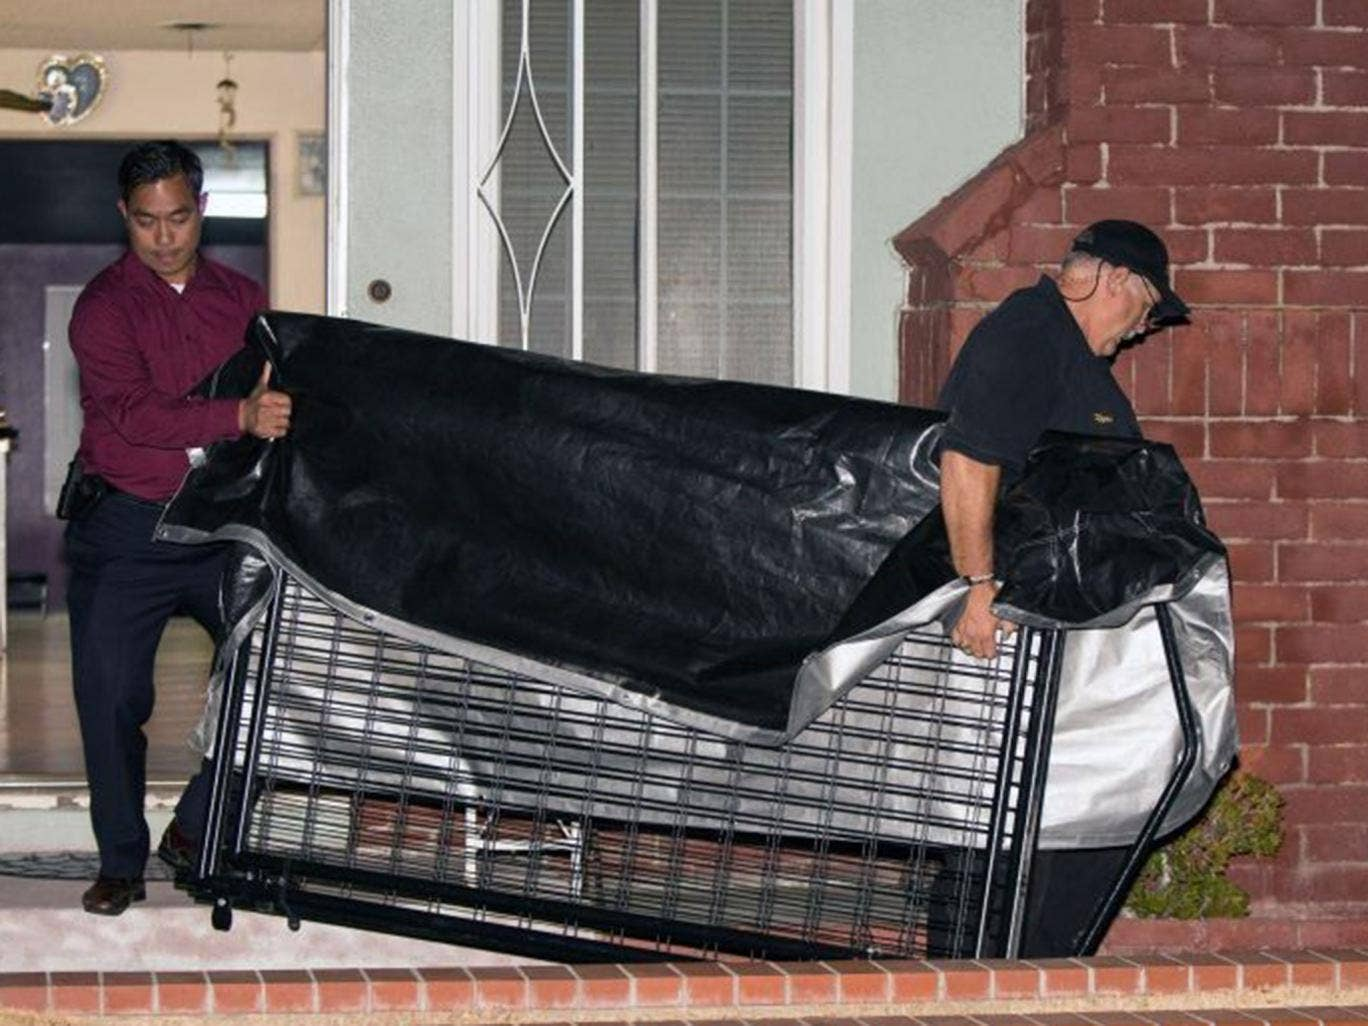 In this Tuesday, July 1, 2014 photo, a crime scene investigator and a detective carry a cage from a residence in Anaheim, Calif. An 11-year-old autistic boy who police suspect was kept in a cage has been removed from the home, and his parents have been ar